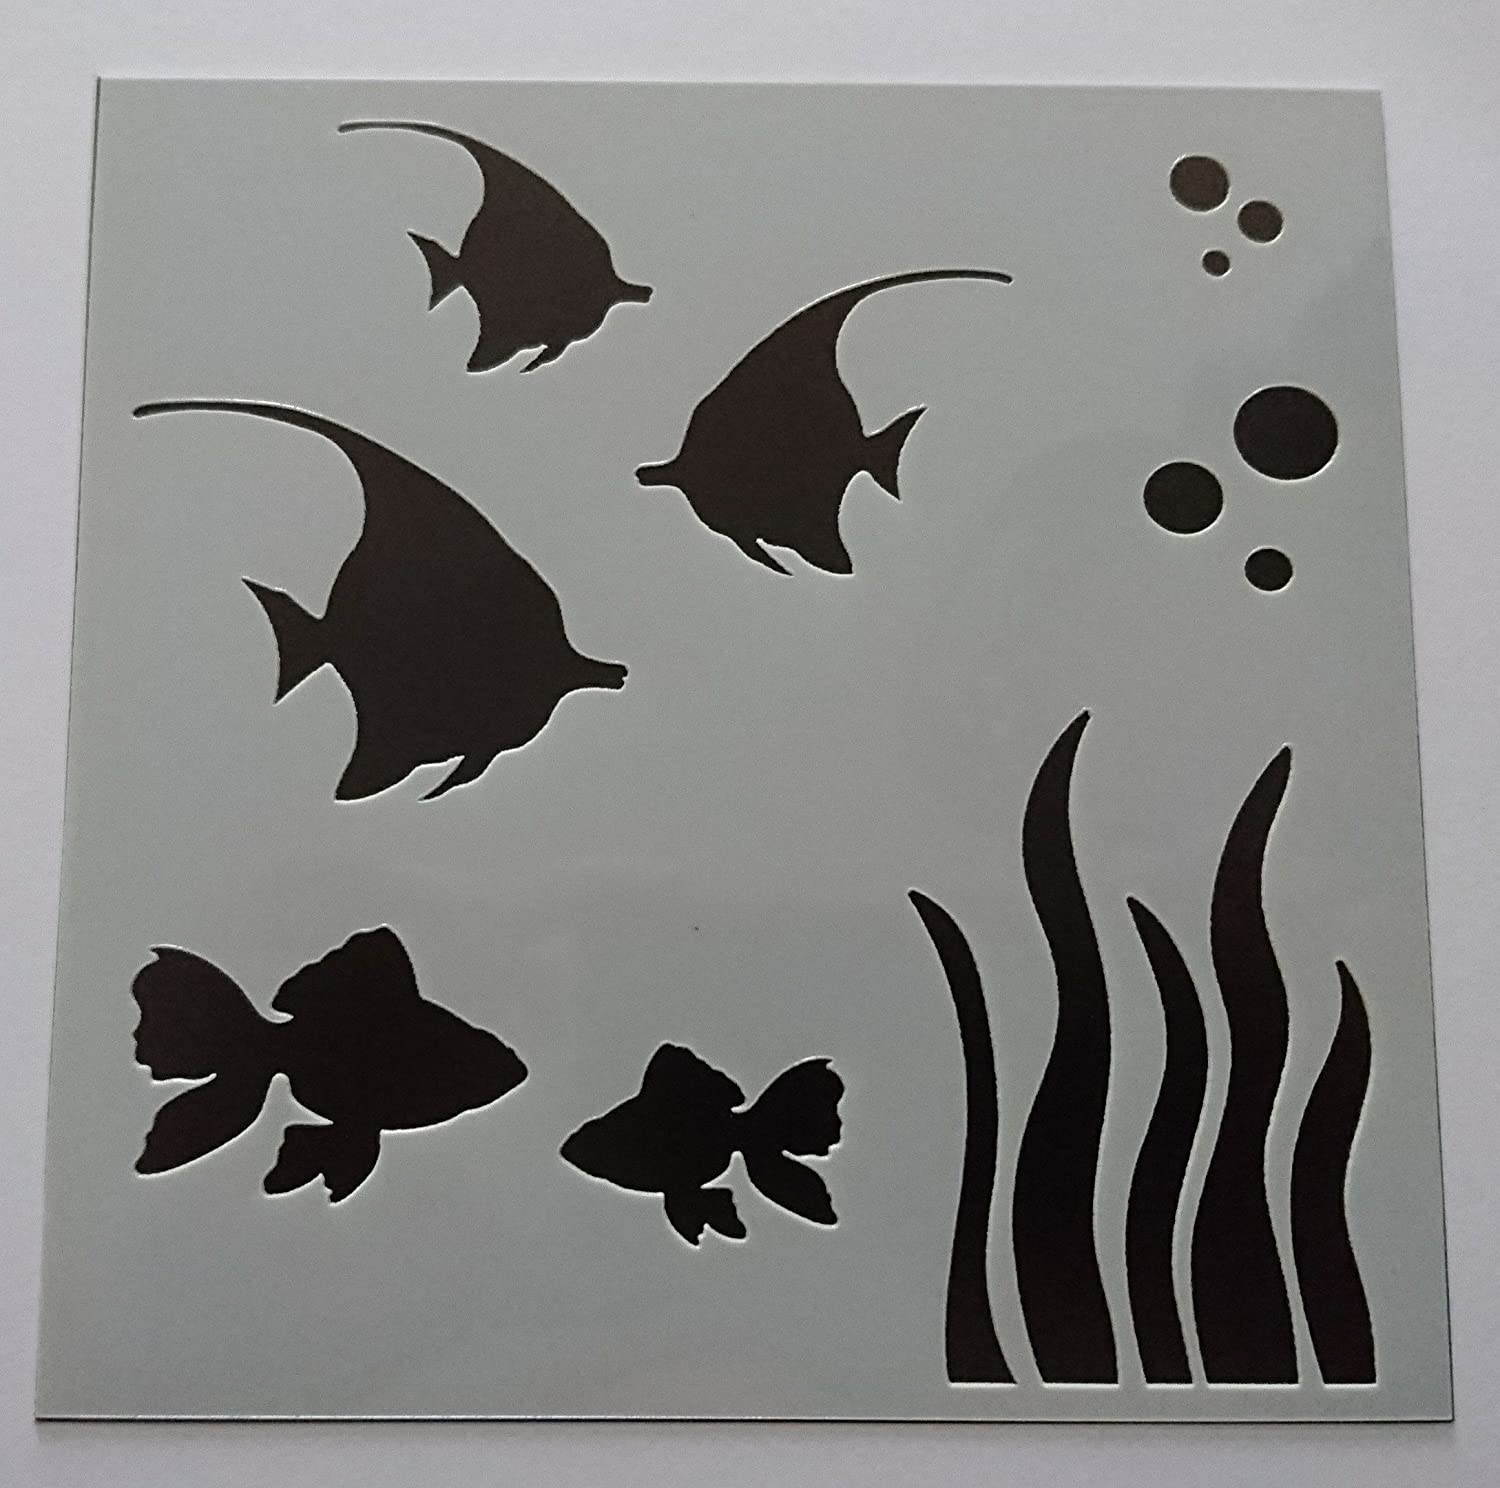 Pesci 15, 2 x 15, 2 cm stencil/Mask by Imagine design creare Imagine Design Create